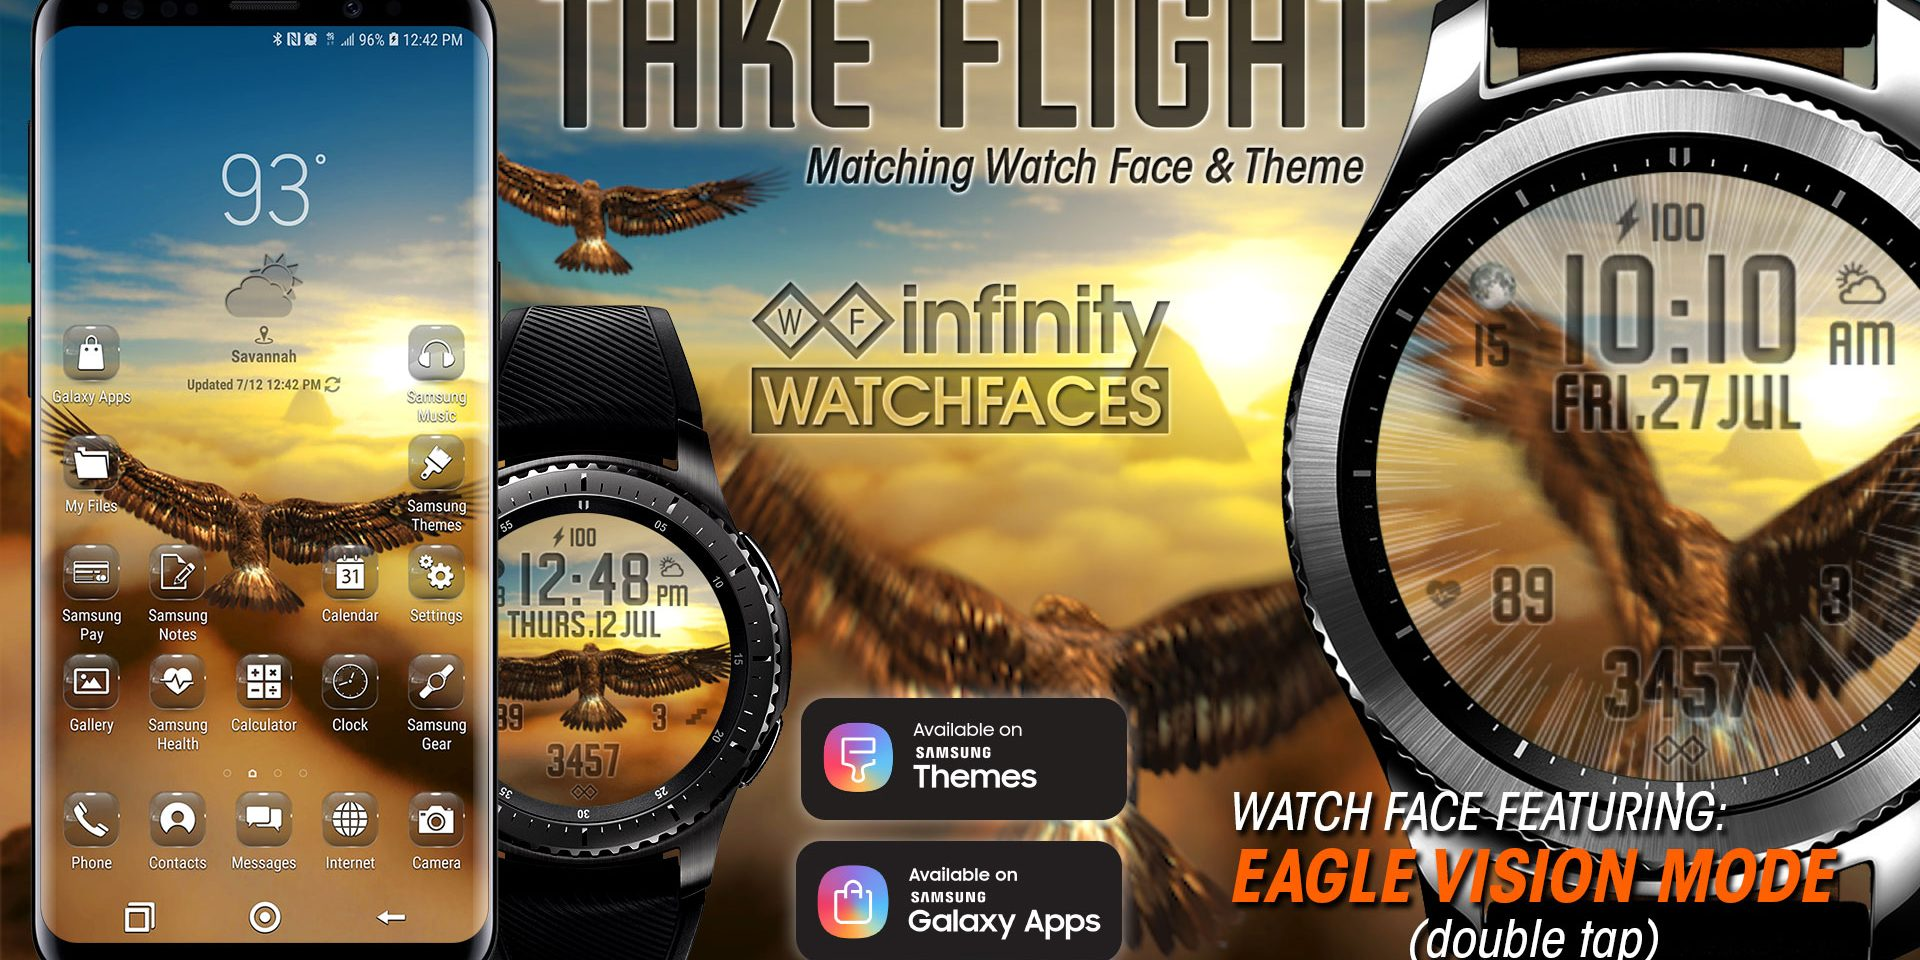 Take Flight Watch Face & Matching Theme for Samsung Galaxy Watch